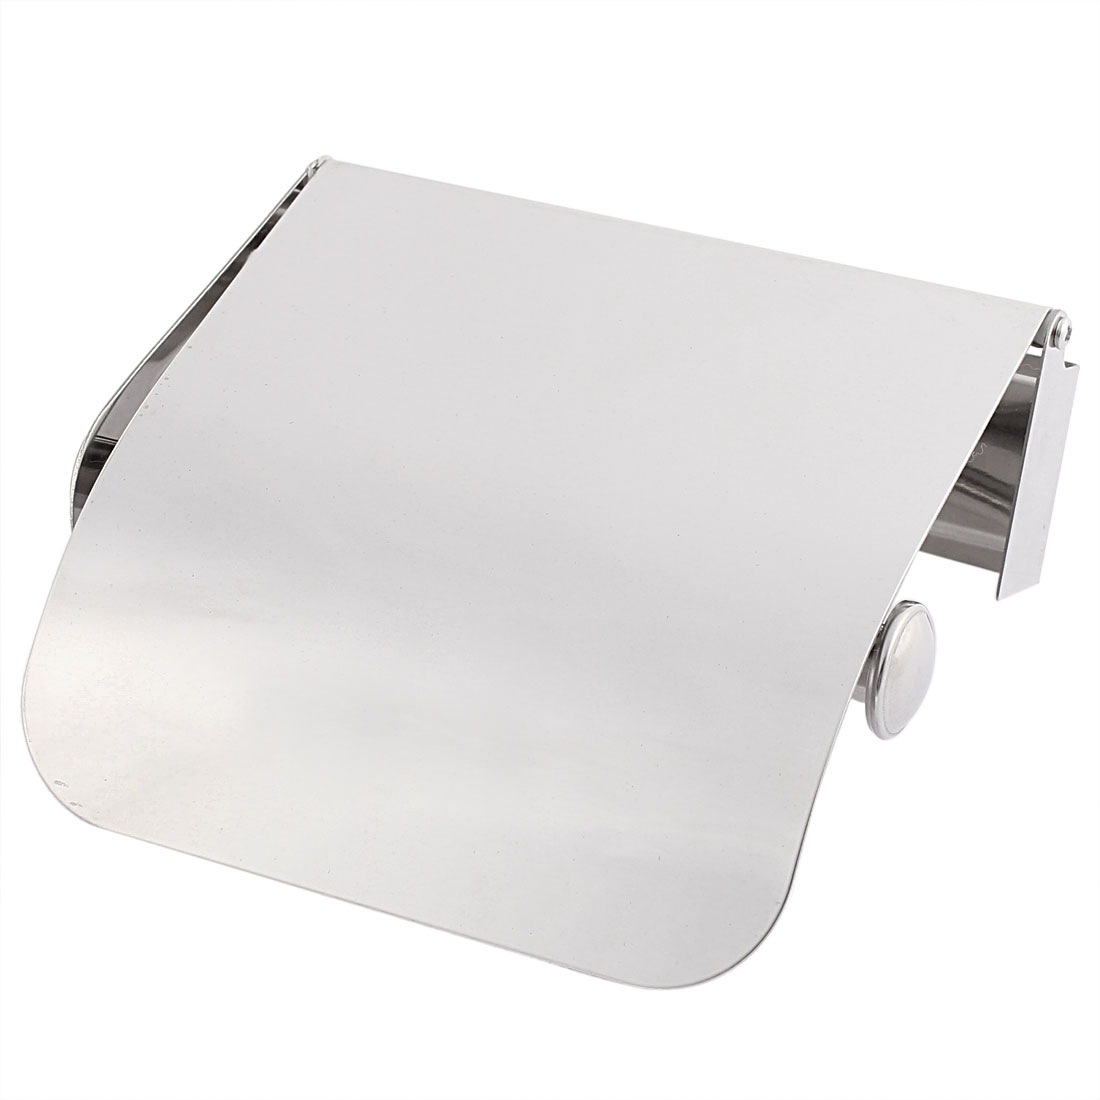 Stainless Steel Toilet Paper Holder Roll Tissue Case by Unique-Bargains